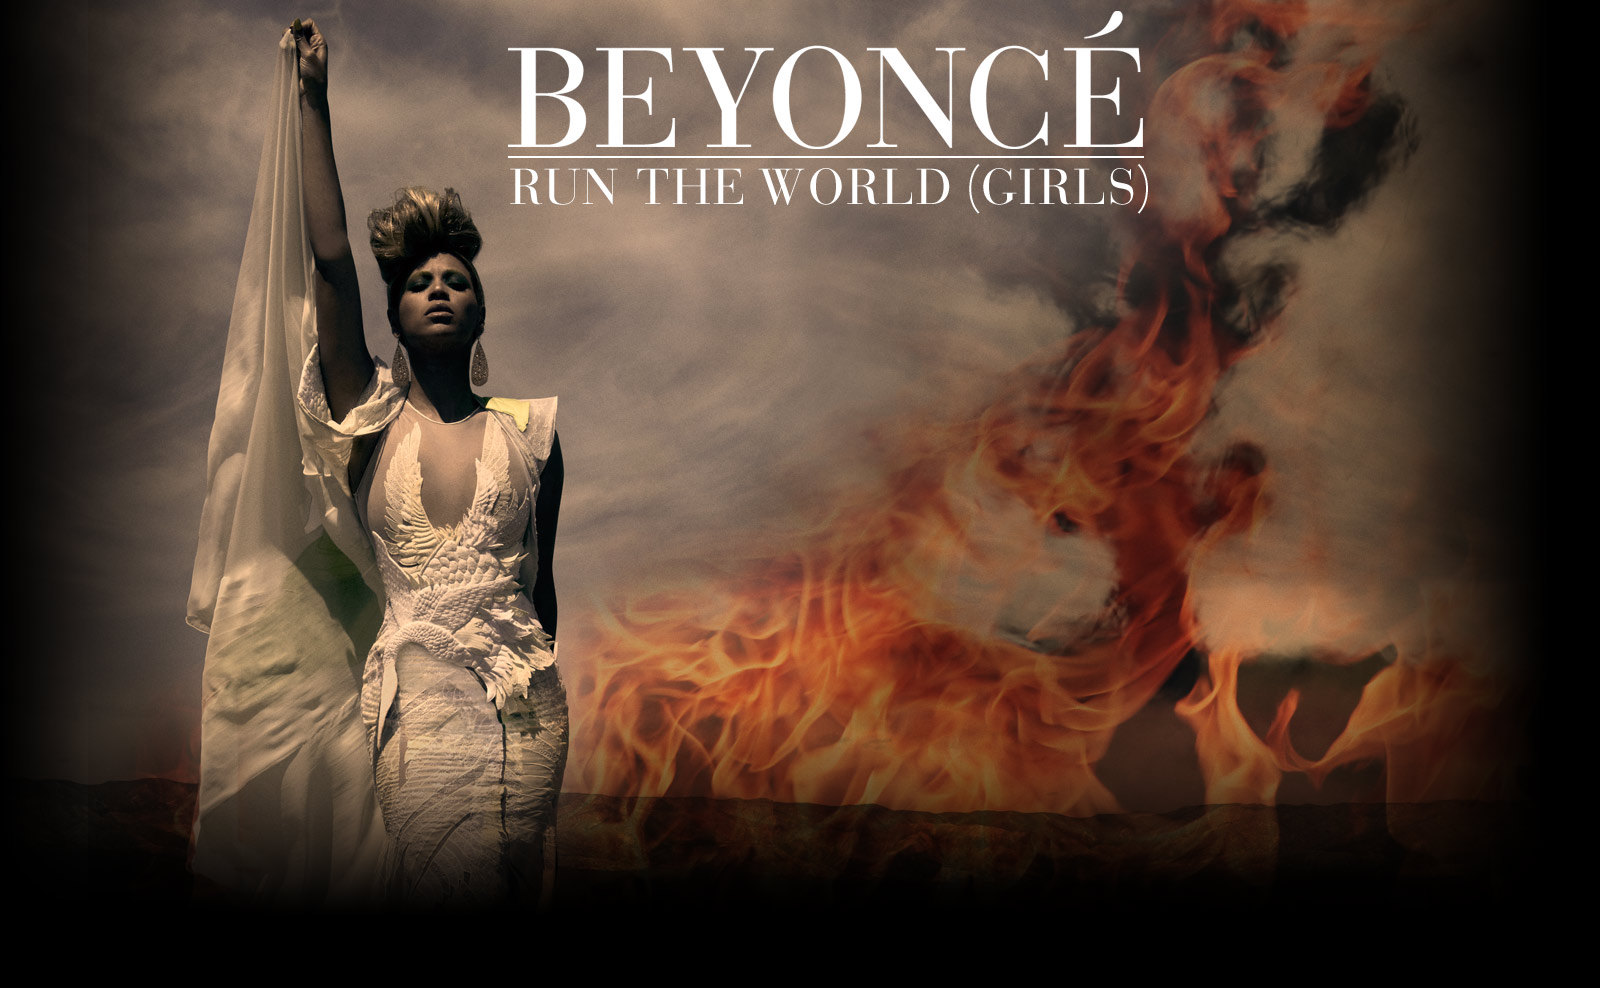 http://2.bp.blogspot.com/-rL4z_UmGbHM/UCJvlQkvJ7I/AAAAAAAAG2I/E5fS1Hh8oic/s1600/beyonce-run-the-world-girls-111111111.jpeg